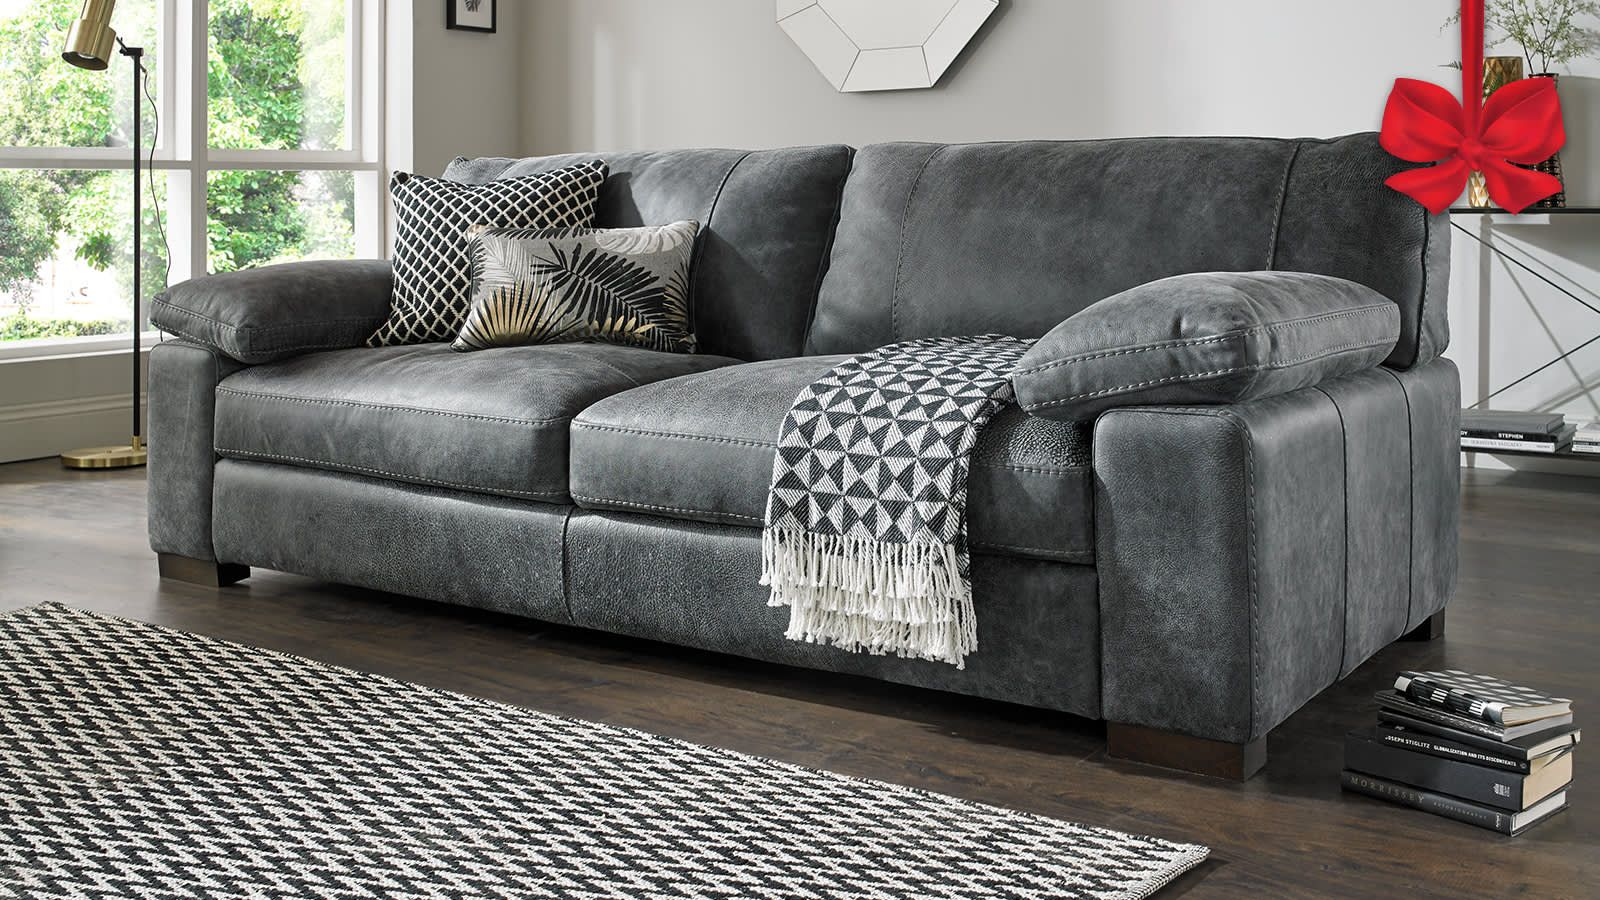 Sofology | Leather & fabric sofas – corners, sofa beds & chairs